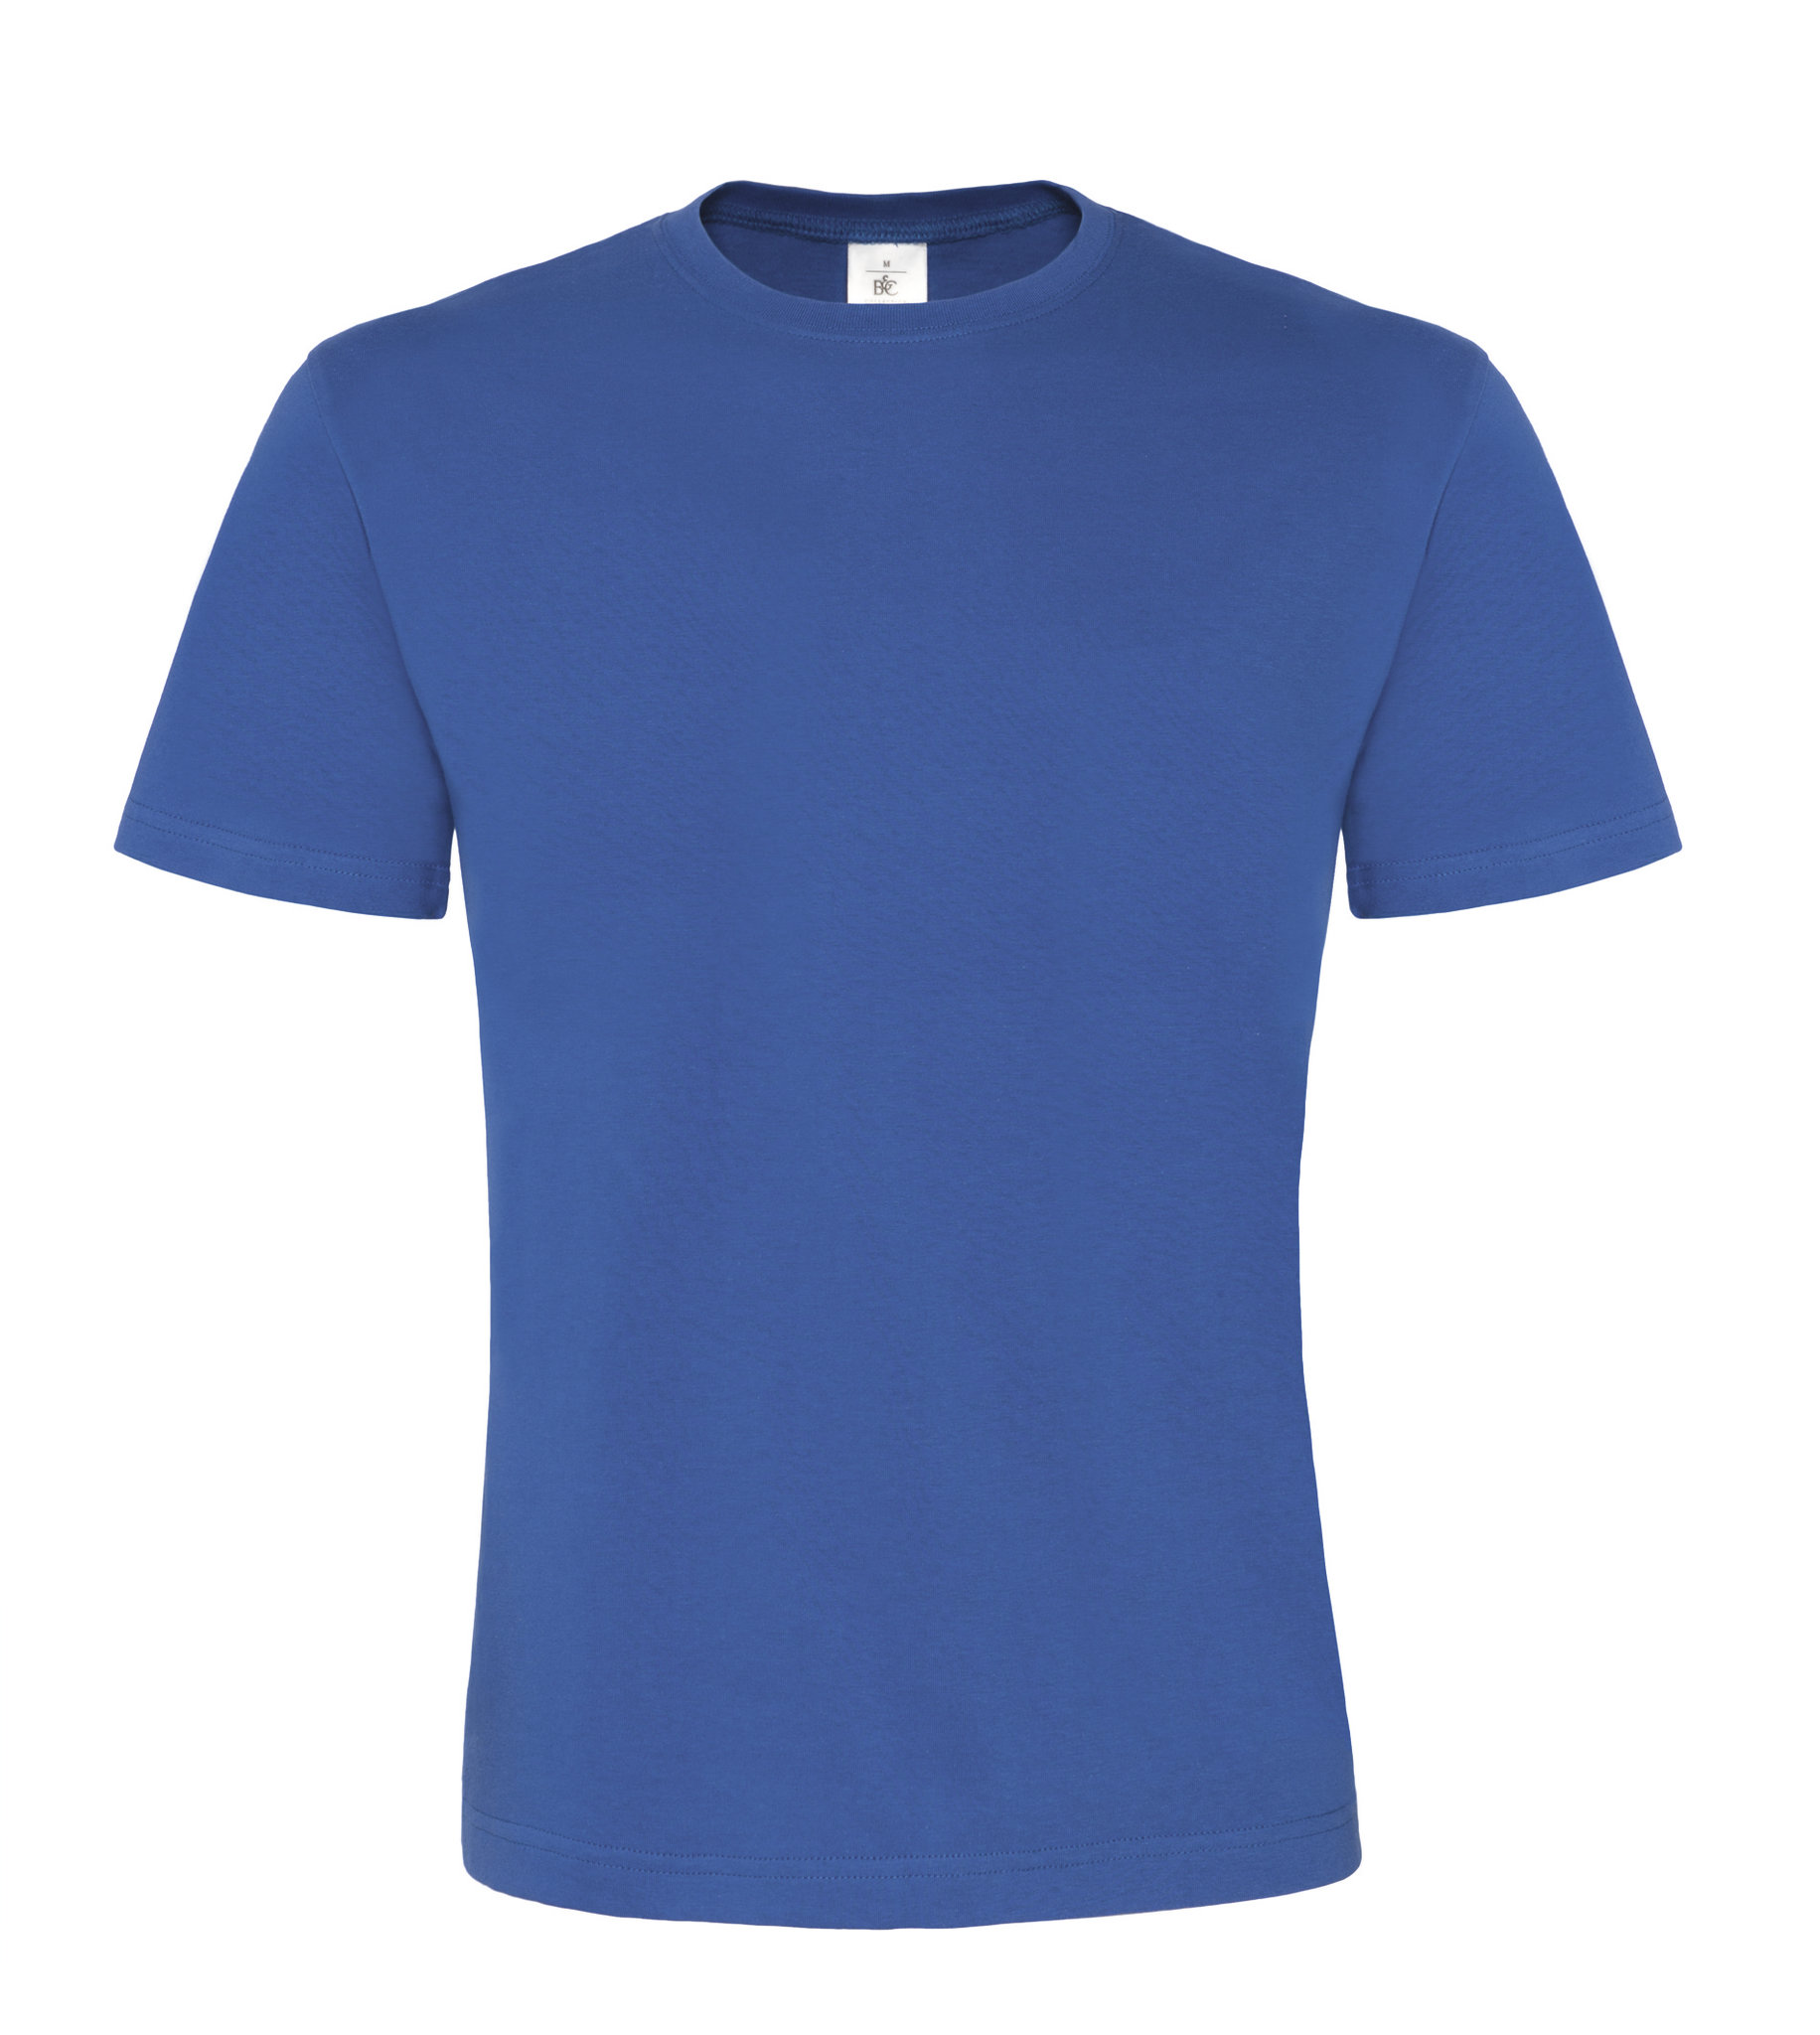 T-shirt personnalisable Exacty - t-shirt promotionnel